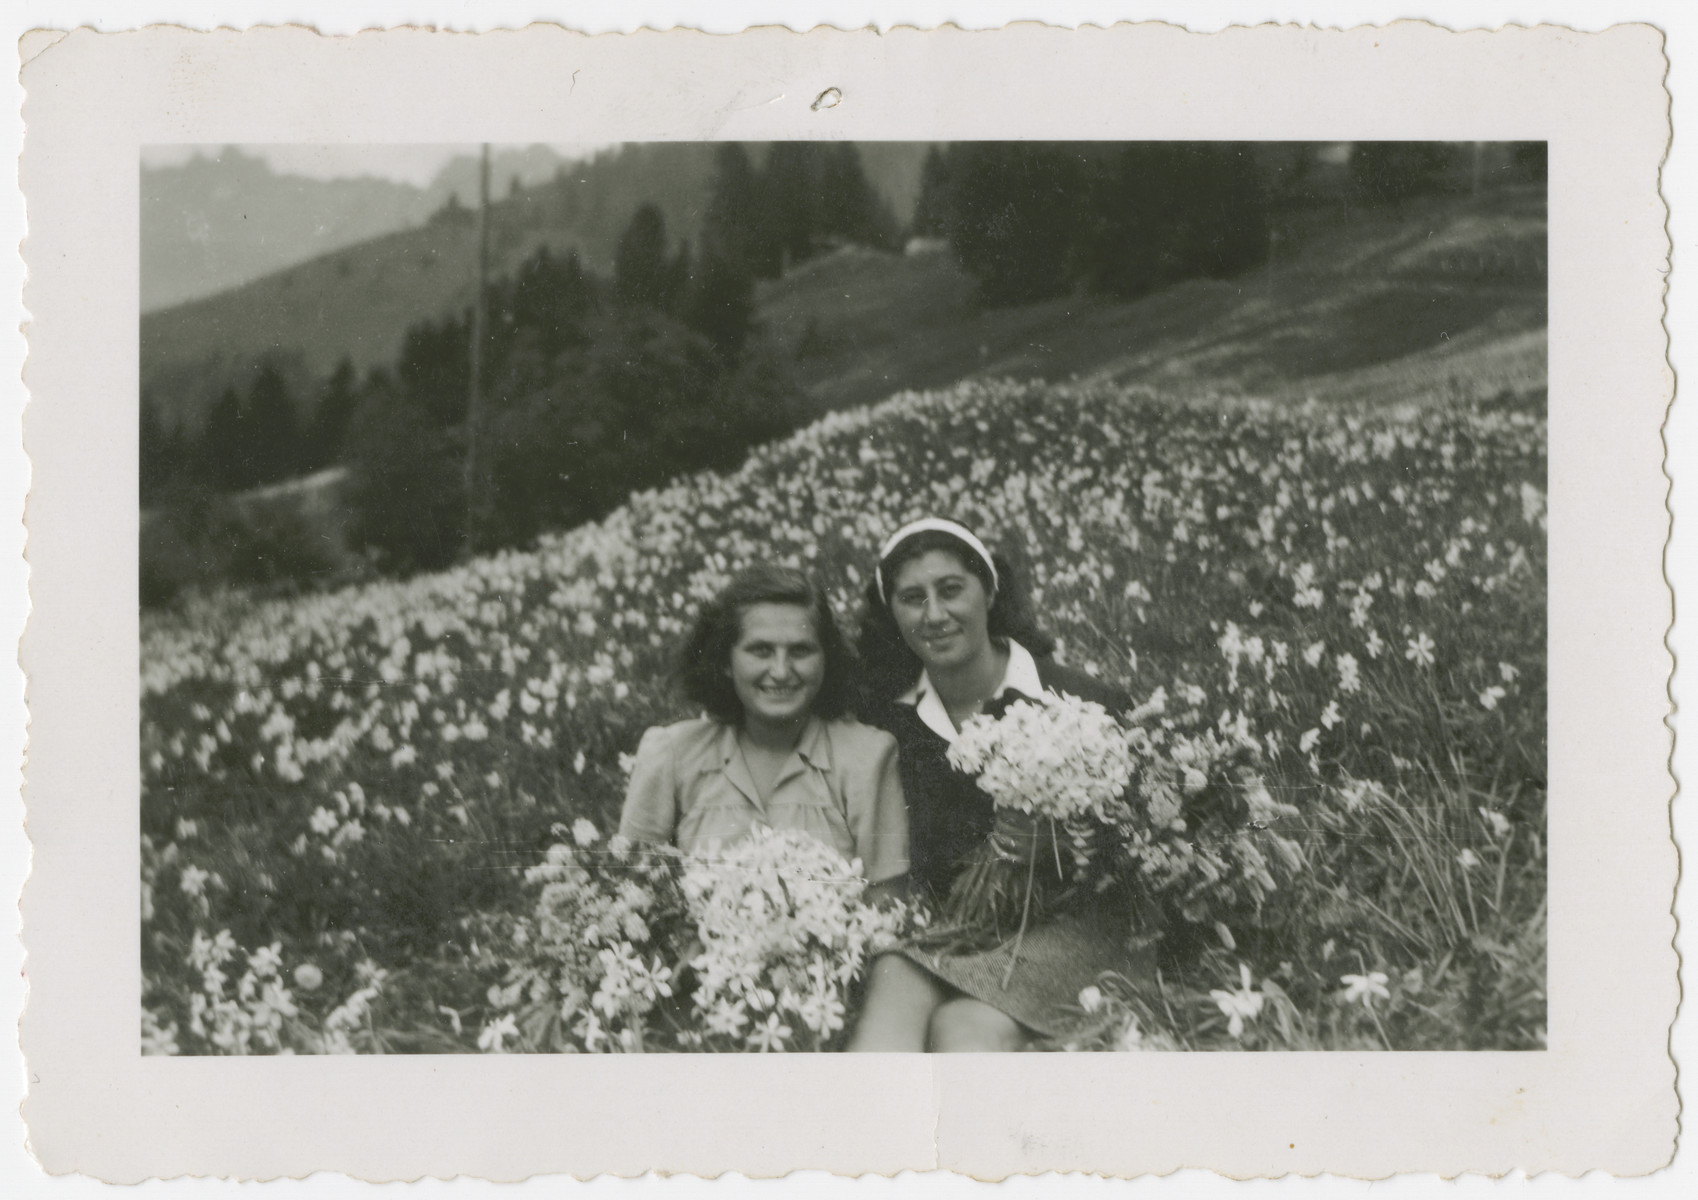 Eva Weinberger (left) and a friend pose in a field of wild flowers in Castella di Trevano.